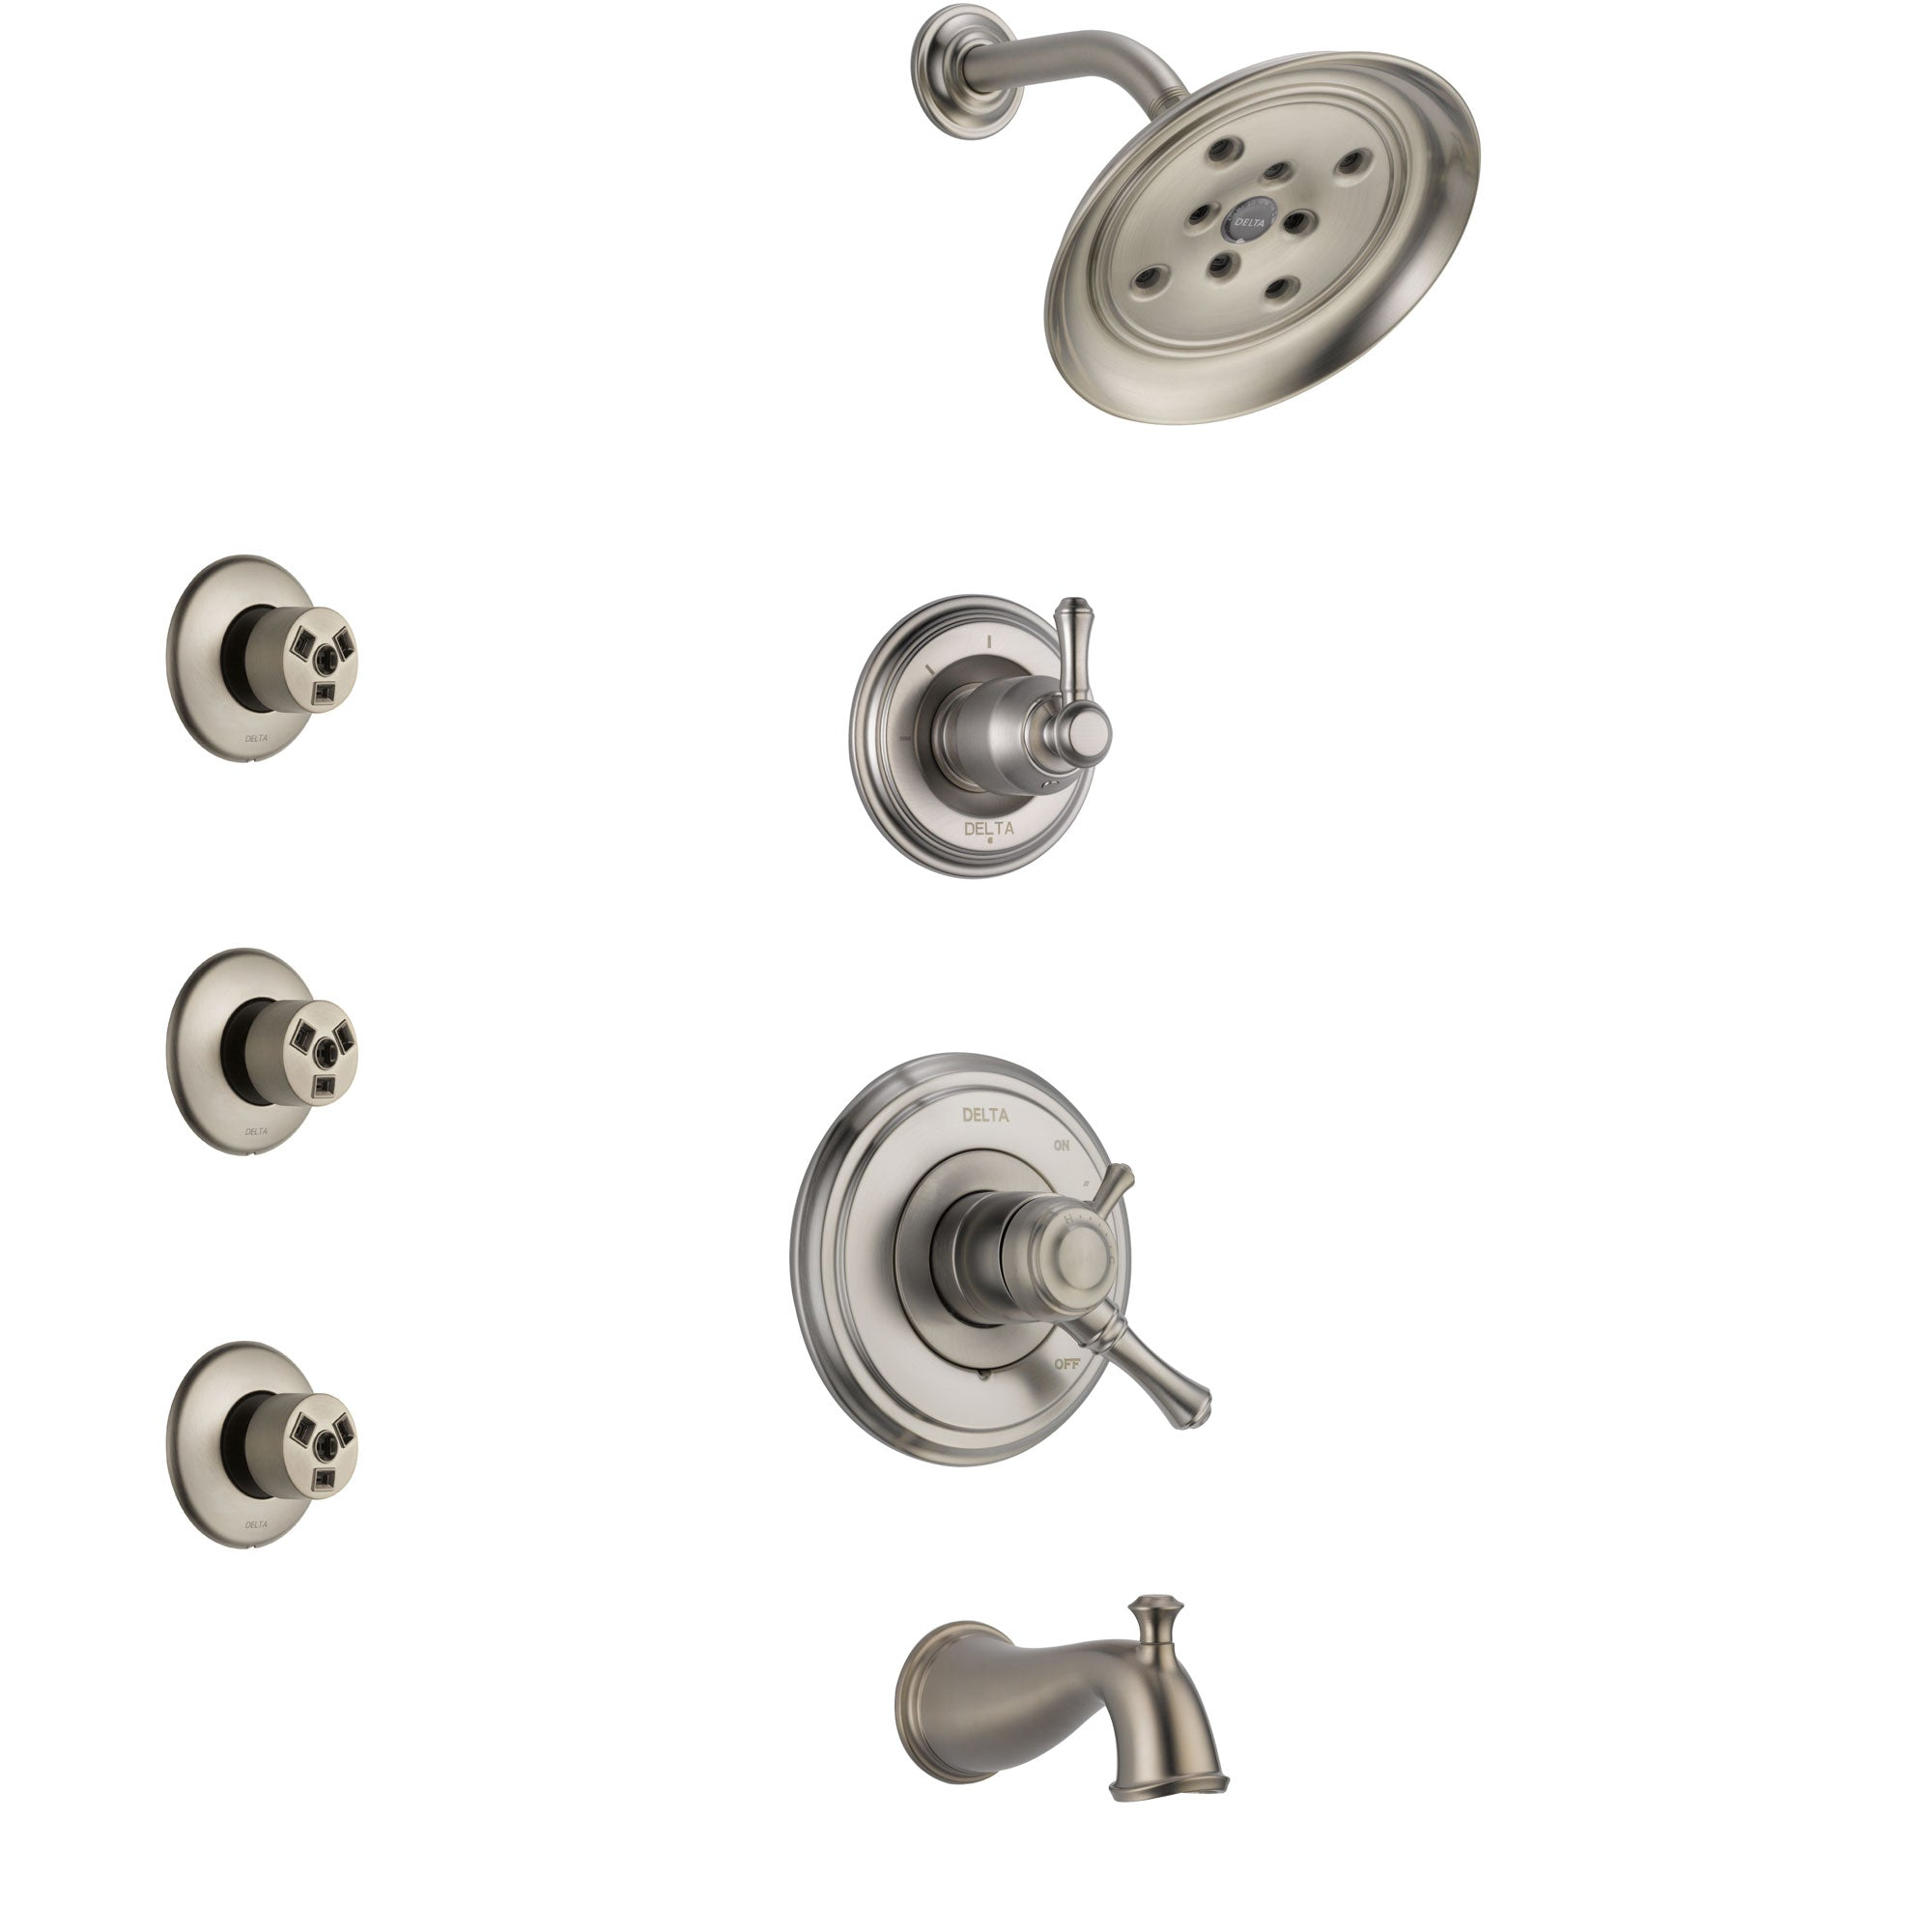 Delta Cassidy Stainless Steel Finish Tub and Shower System with Dual Control Handle, 3-Setting Diverter, Showerhead, and 3 Body Sprays SS17497SS1